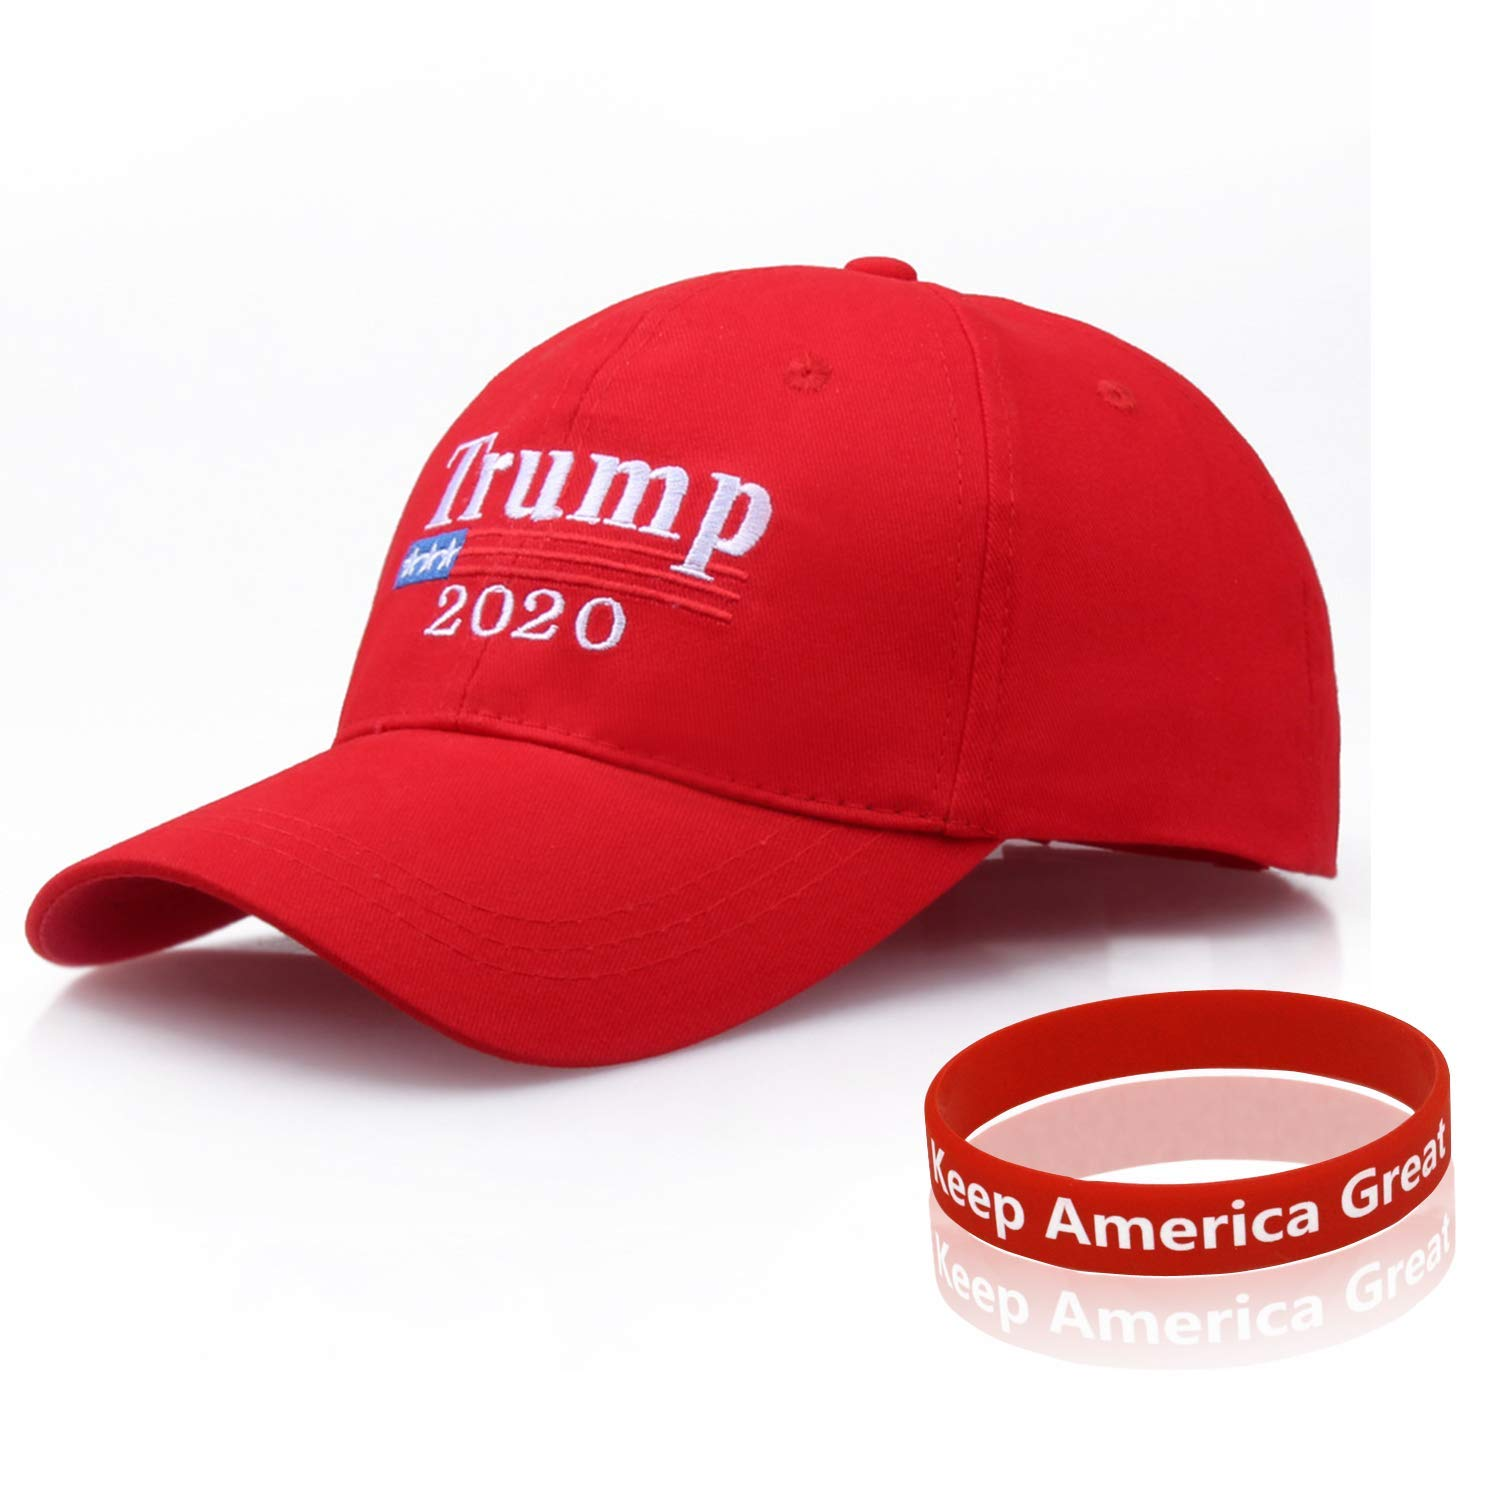 Trump 2020 Hat, Donald Trump Hat Cap, Adjustable Baseball Hat Wristband